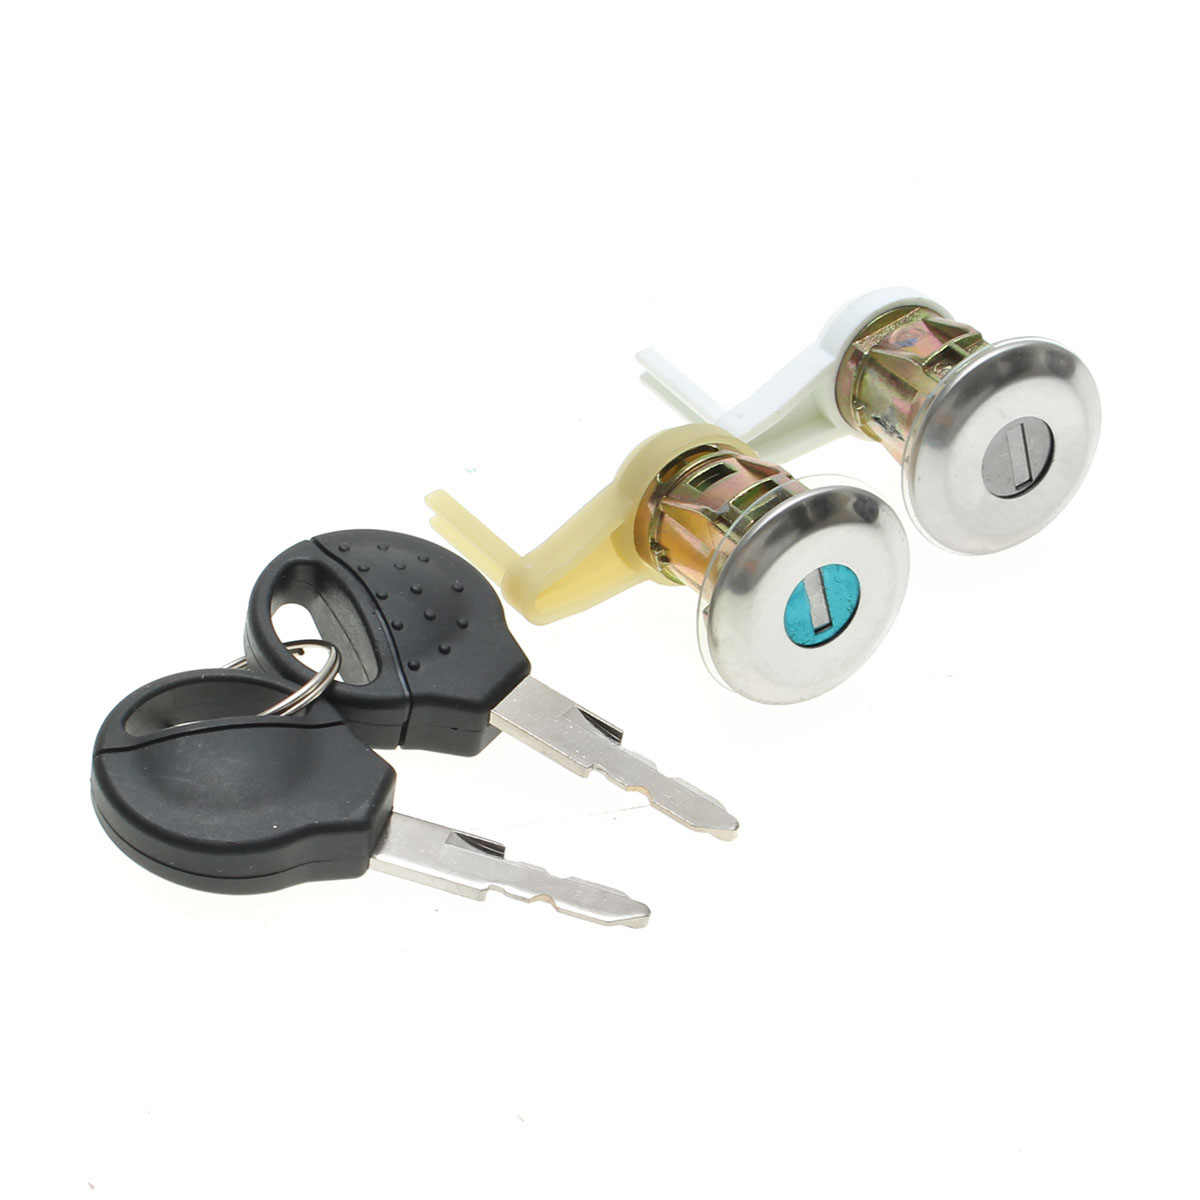 2 Pcs Lockcraft Metal Door Lock With 2 Keys Front&Left&Right For 1998-2009 For PEUGEOT 206 All Models